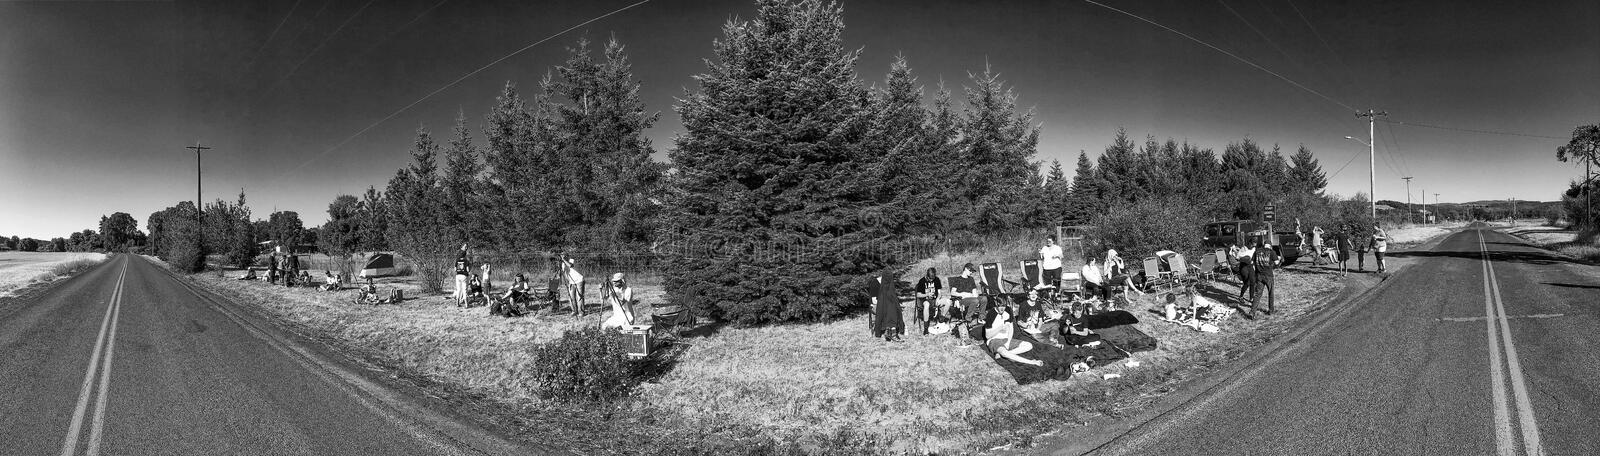 OREGON, USA - AUGUST 21, 2017: Tourists and locals wait for total solar eclipse. This eclipse crosses all the United States.  stock image